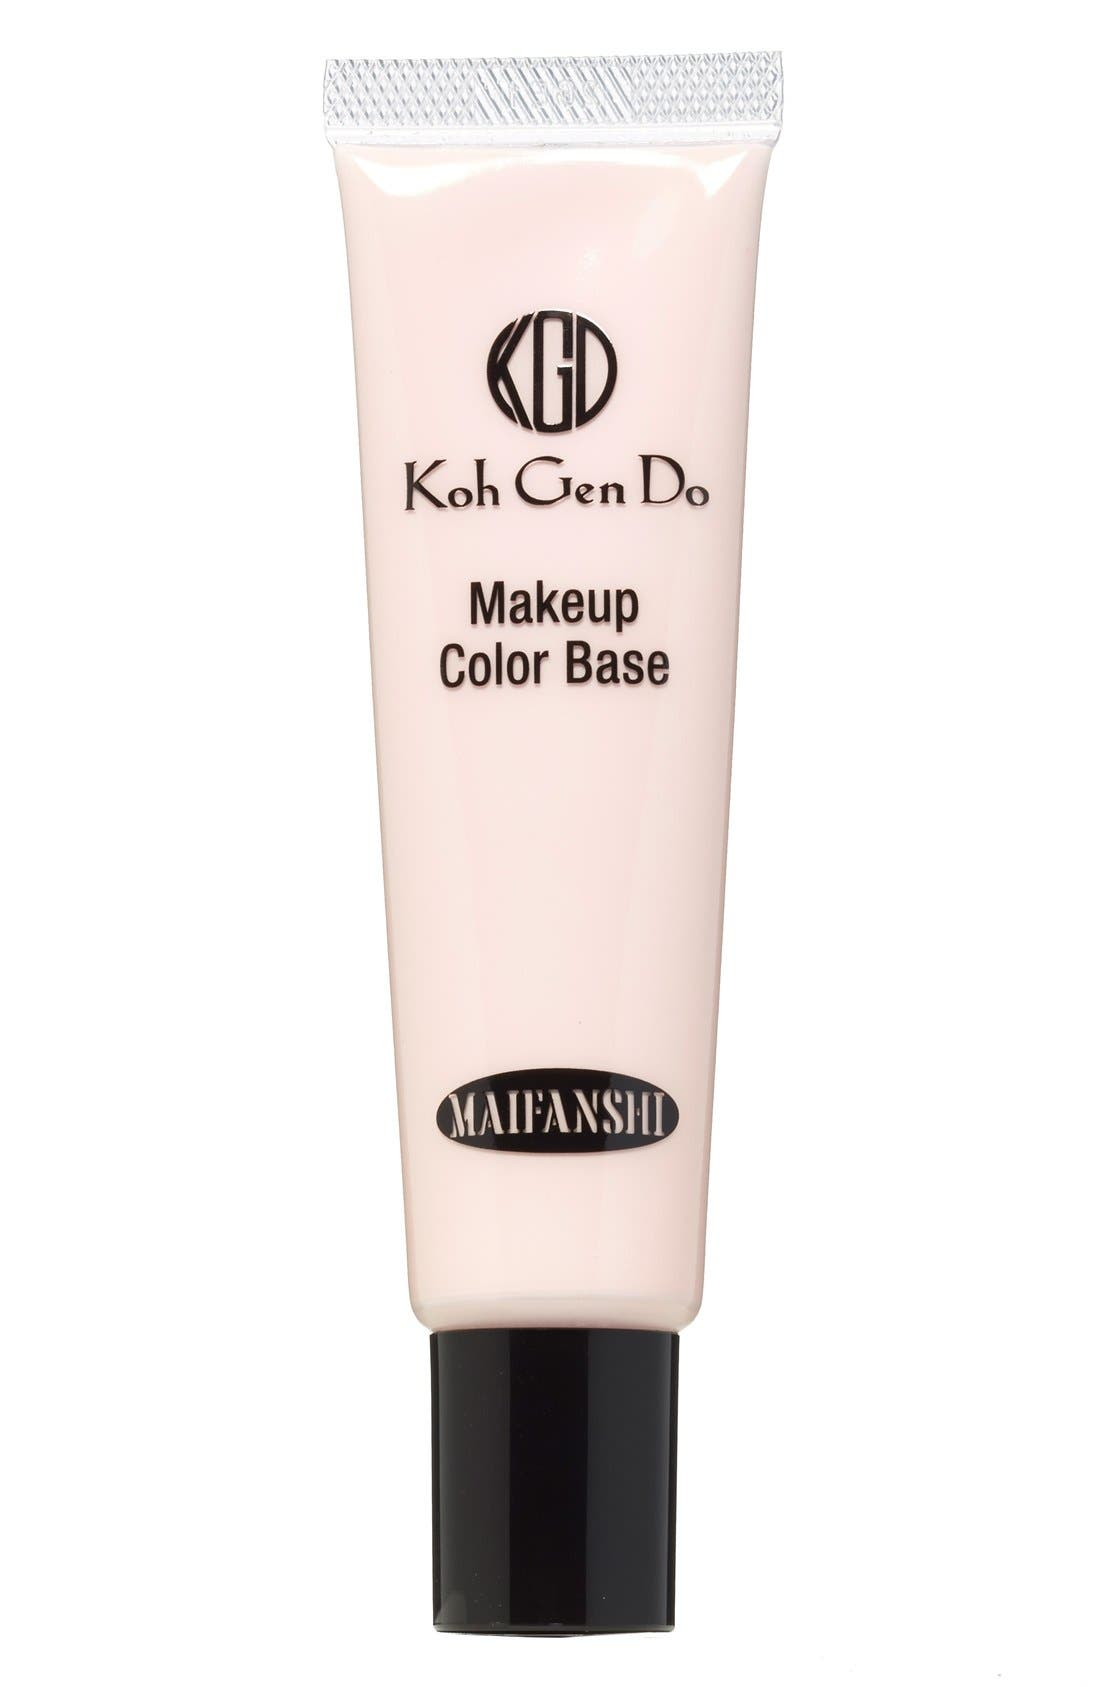 Koh Gen Do 'Maifanshi - Lavender Pink' Makeup Color Base